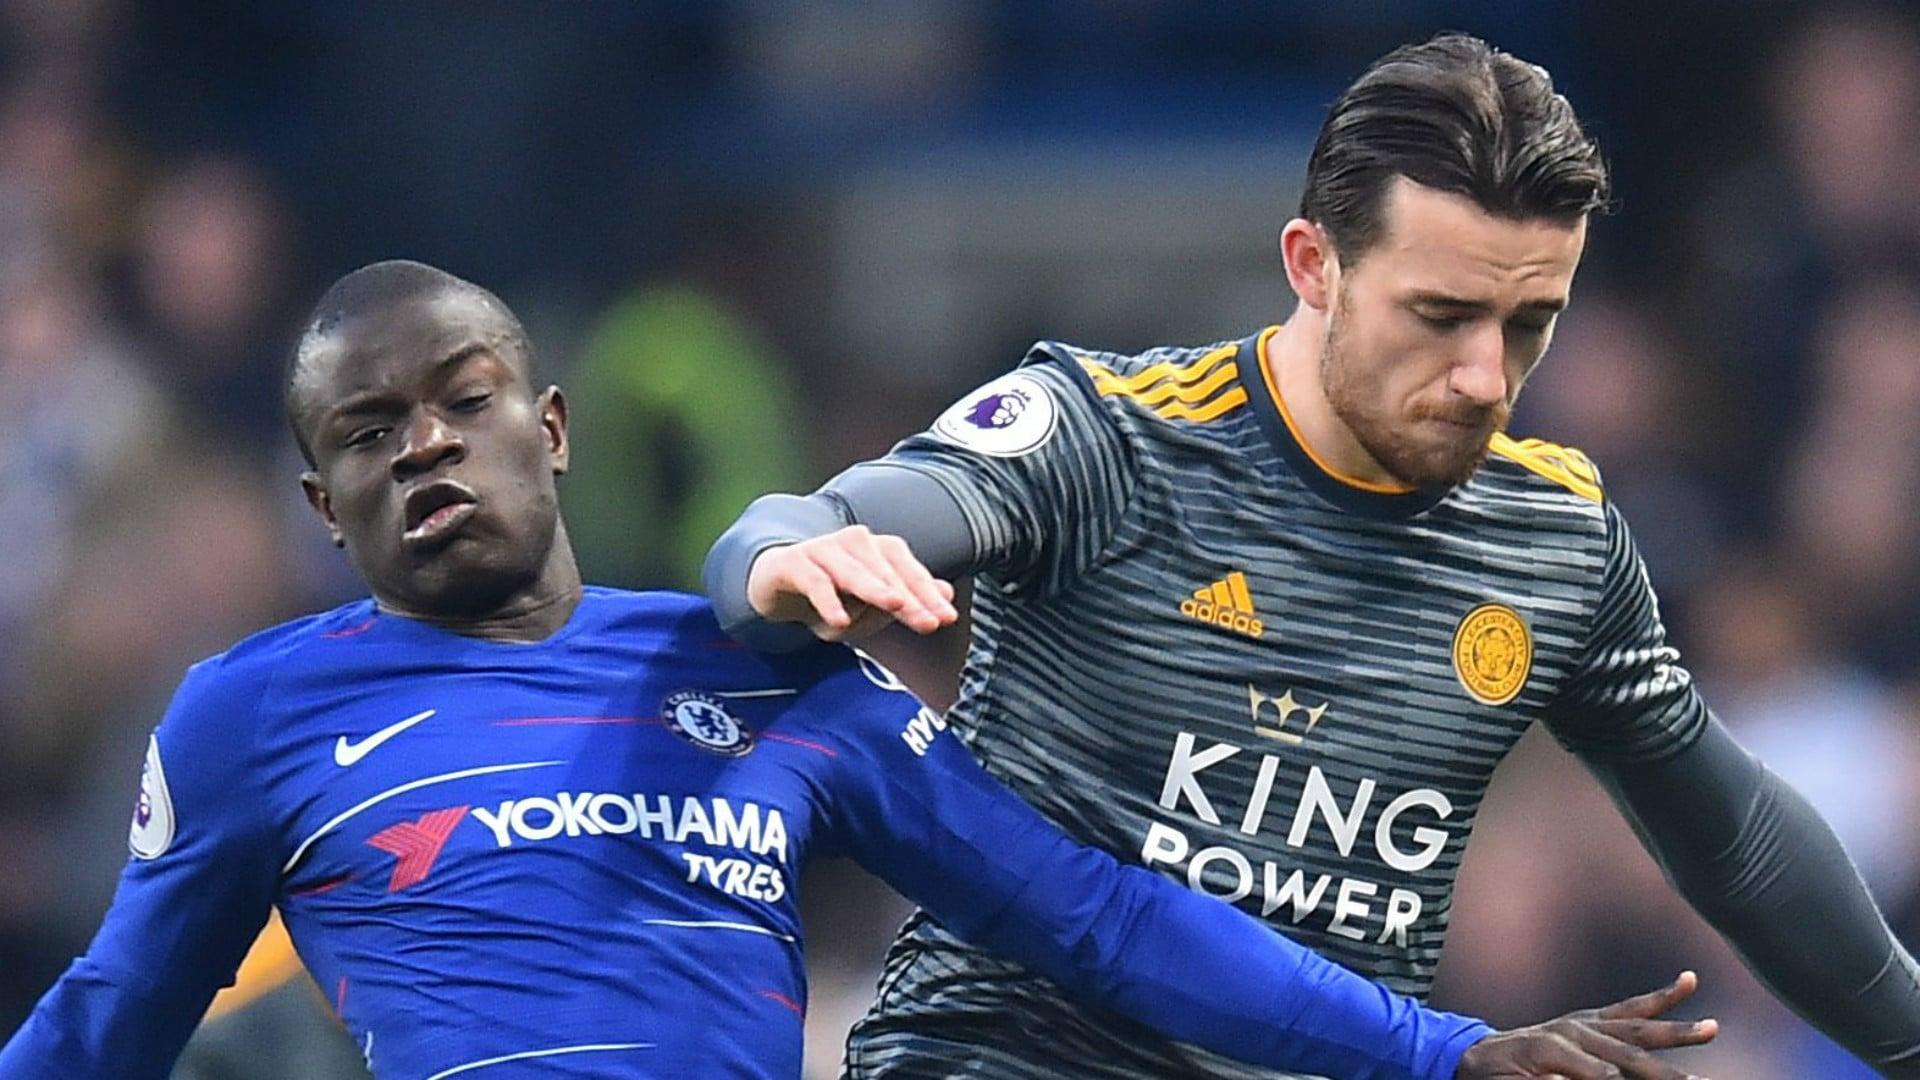 soi-keo-leicester-vs-chelsea-vao-22h-ngay-28-6-2020-1